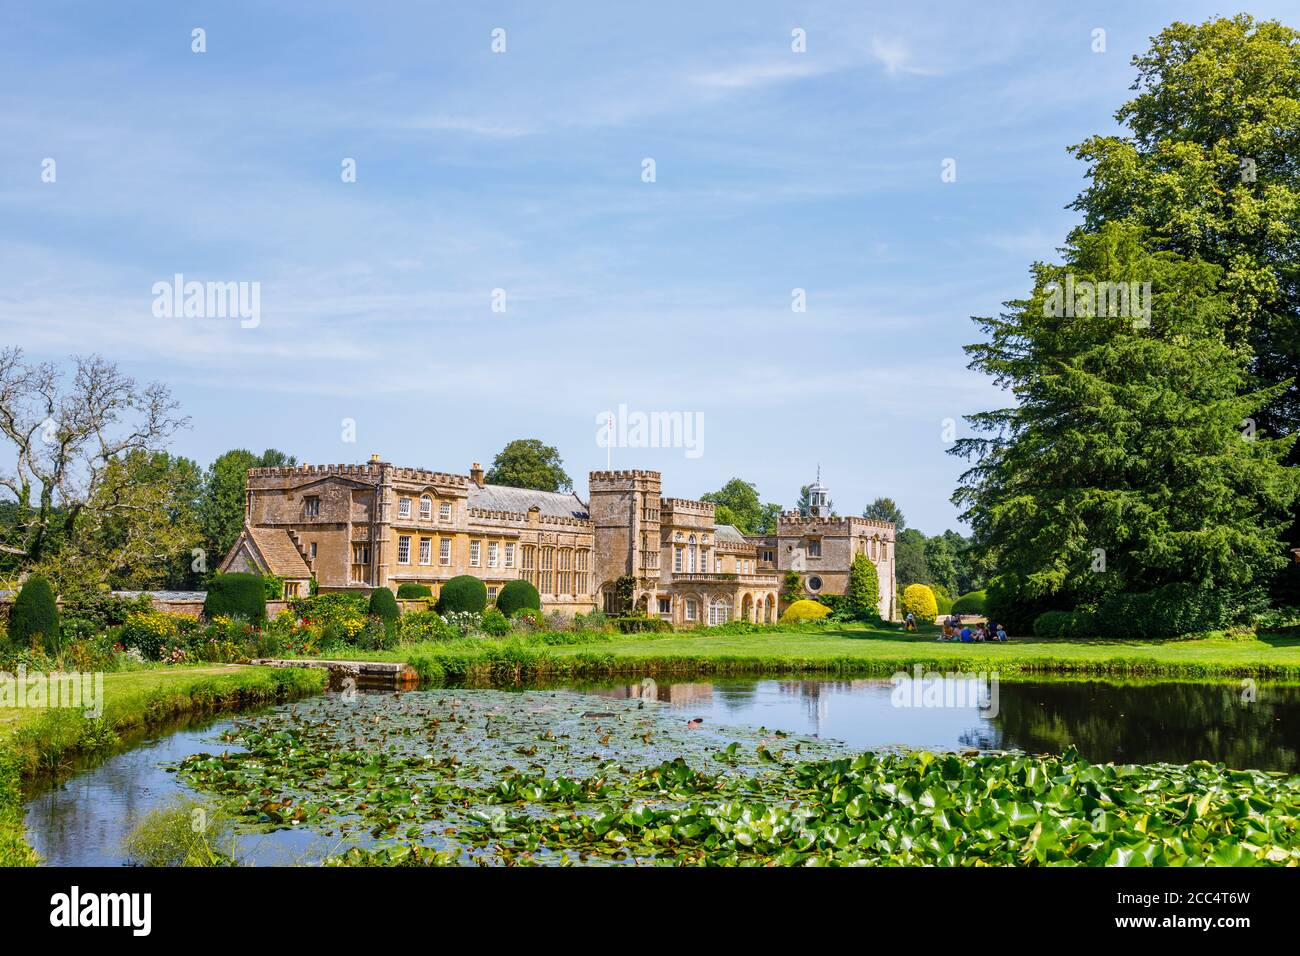 View of Forde Abbey, an historic former Cistercian monastery, across Mermaid Pond, Chard, Somerset, south-west England, Stock Photo